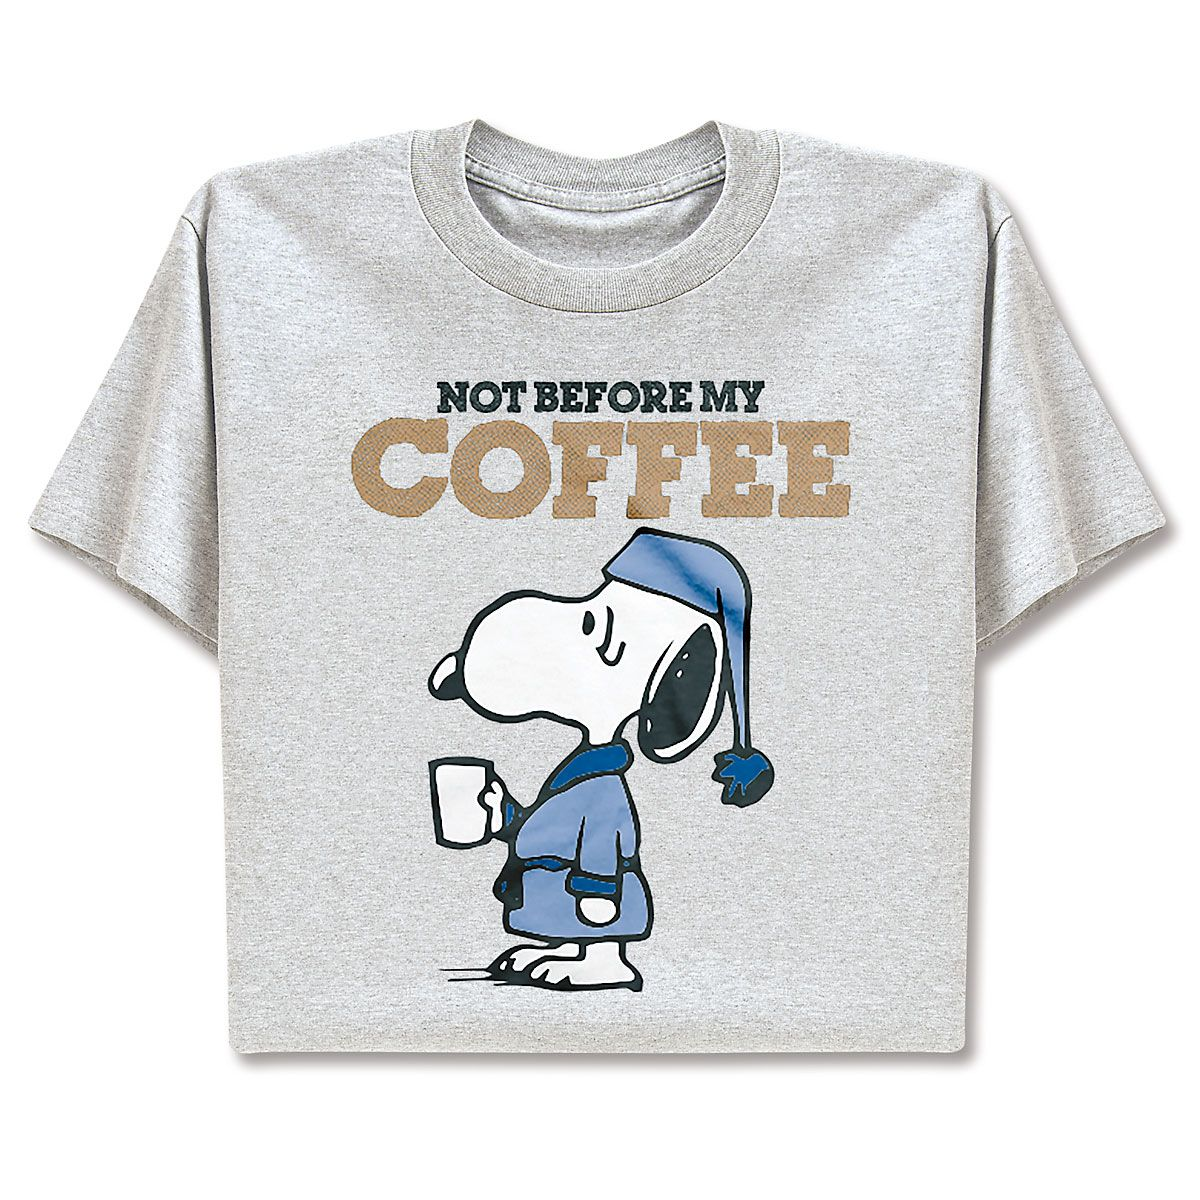 PEANUTS® - T-Shirts - Not Before My Coffee